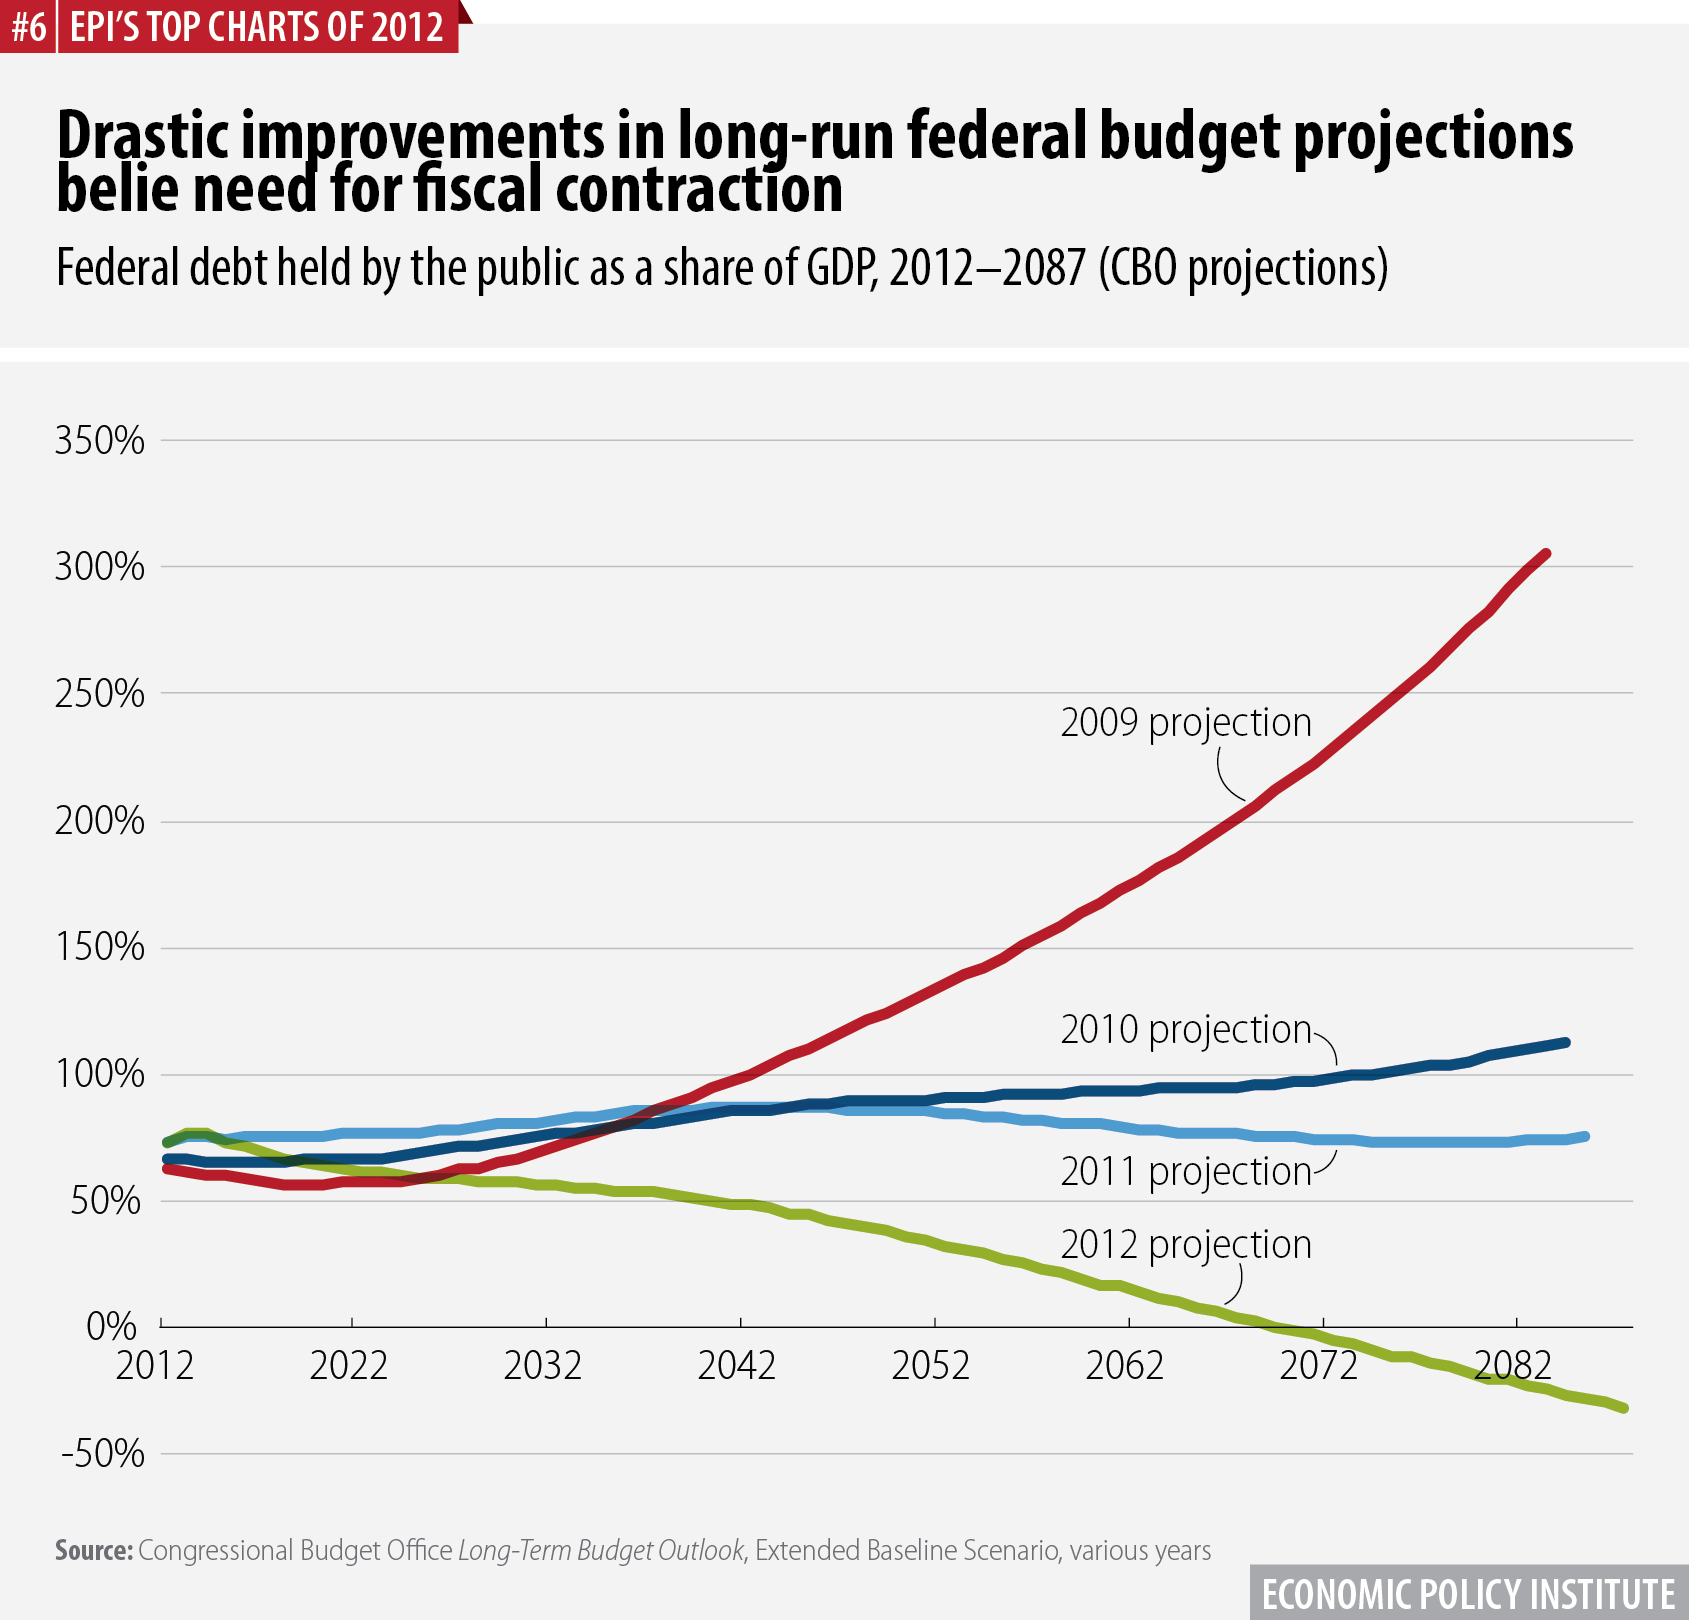 Drastic improvements in long-run federal budget projections belie need for fiscal contraction | Federal debt held by the public as a share of GDP, 2012–2084 and beyond (CBO projections)